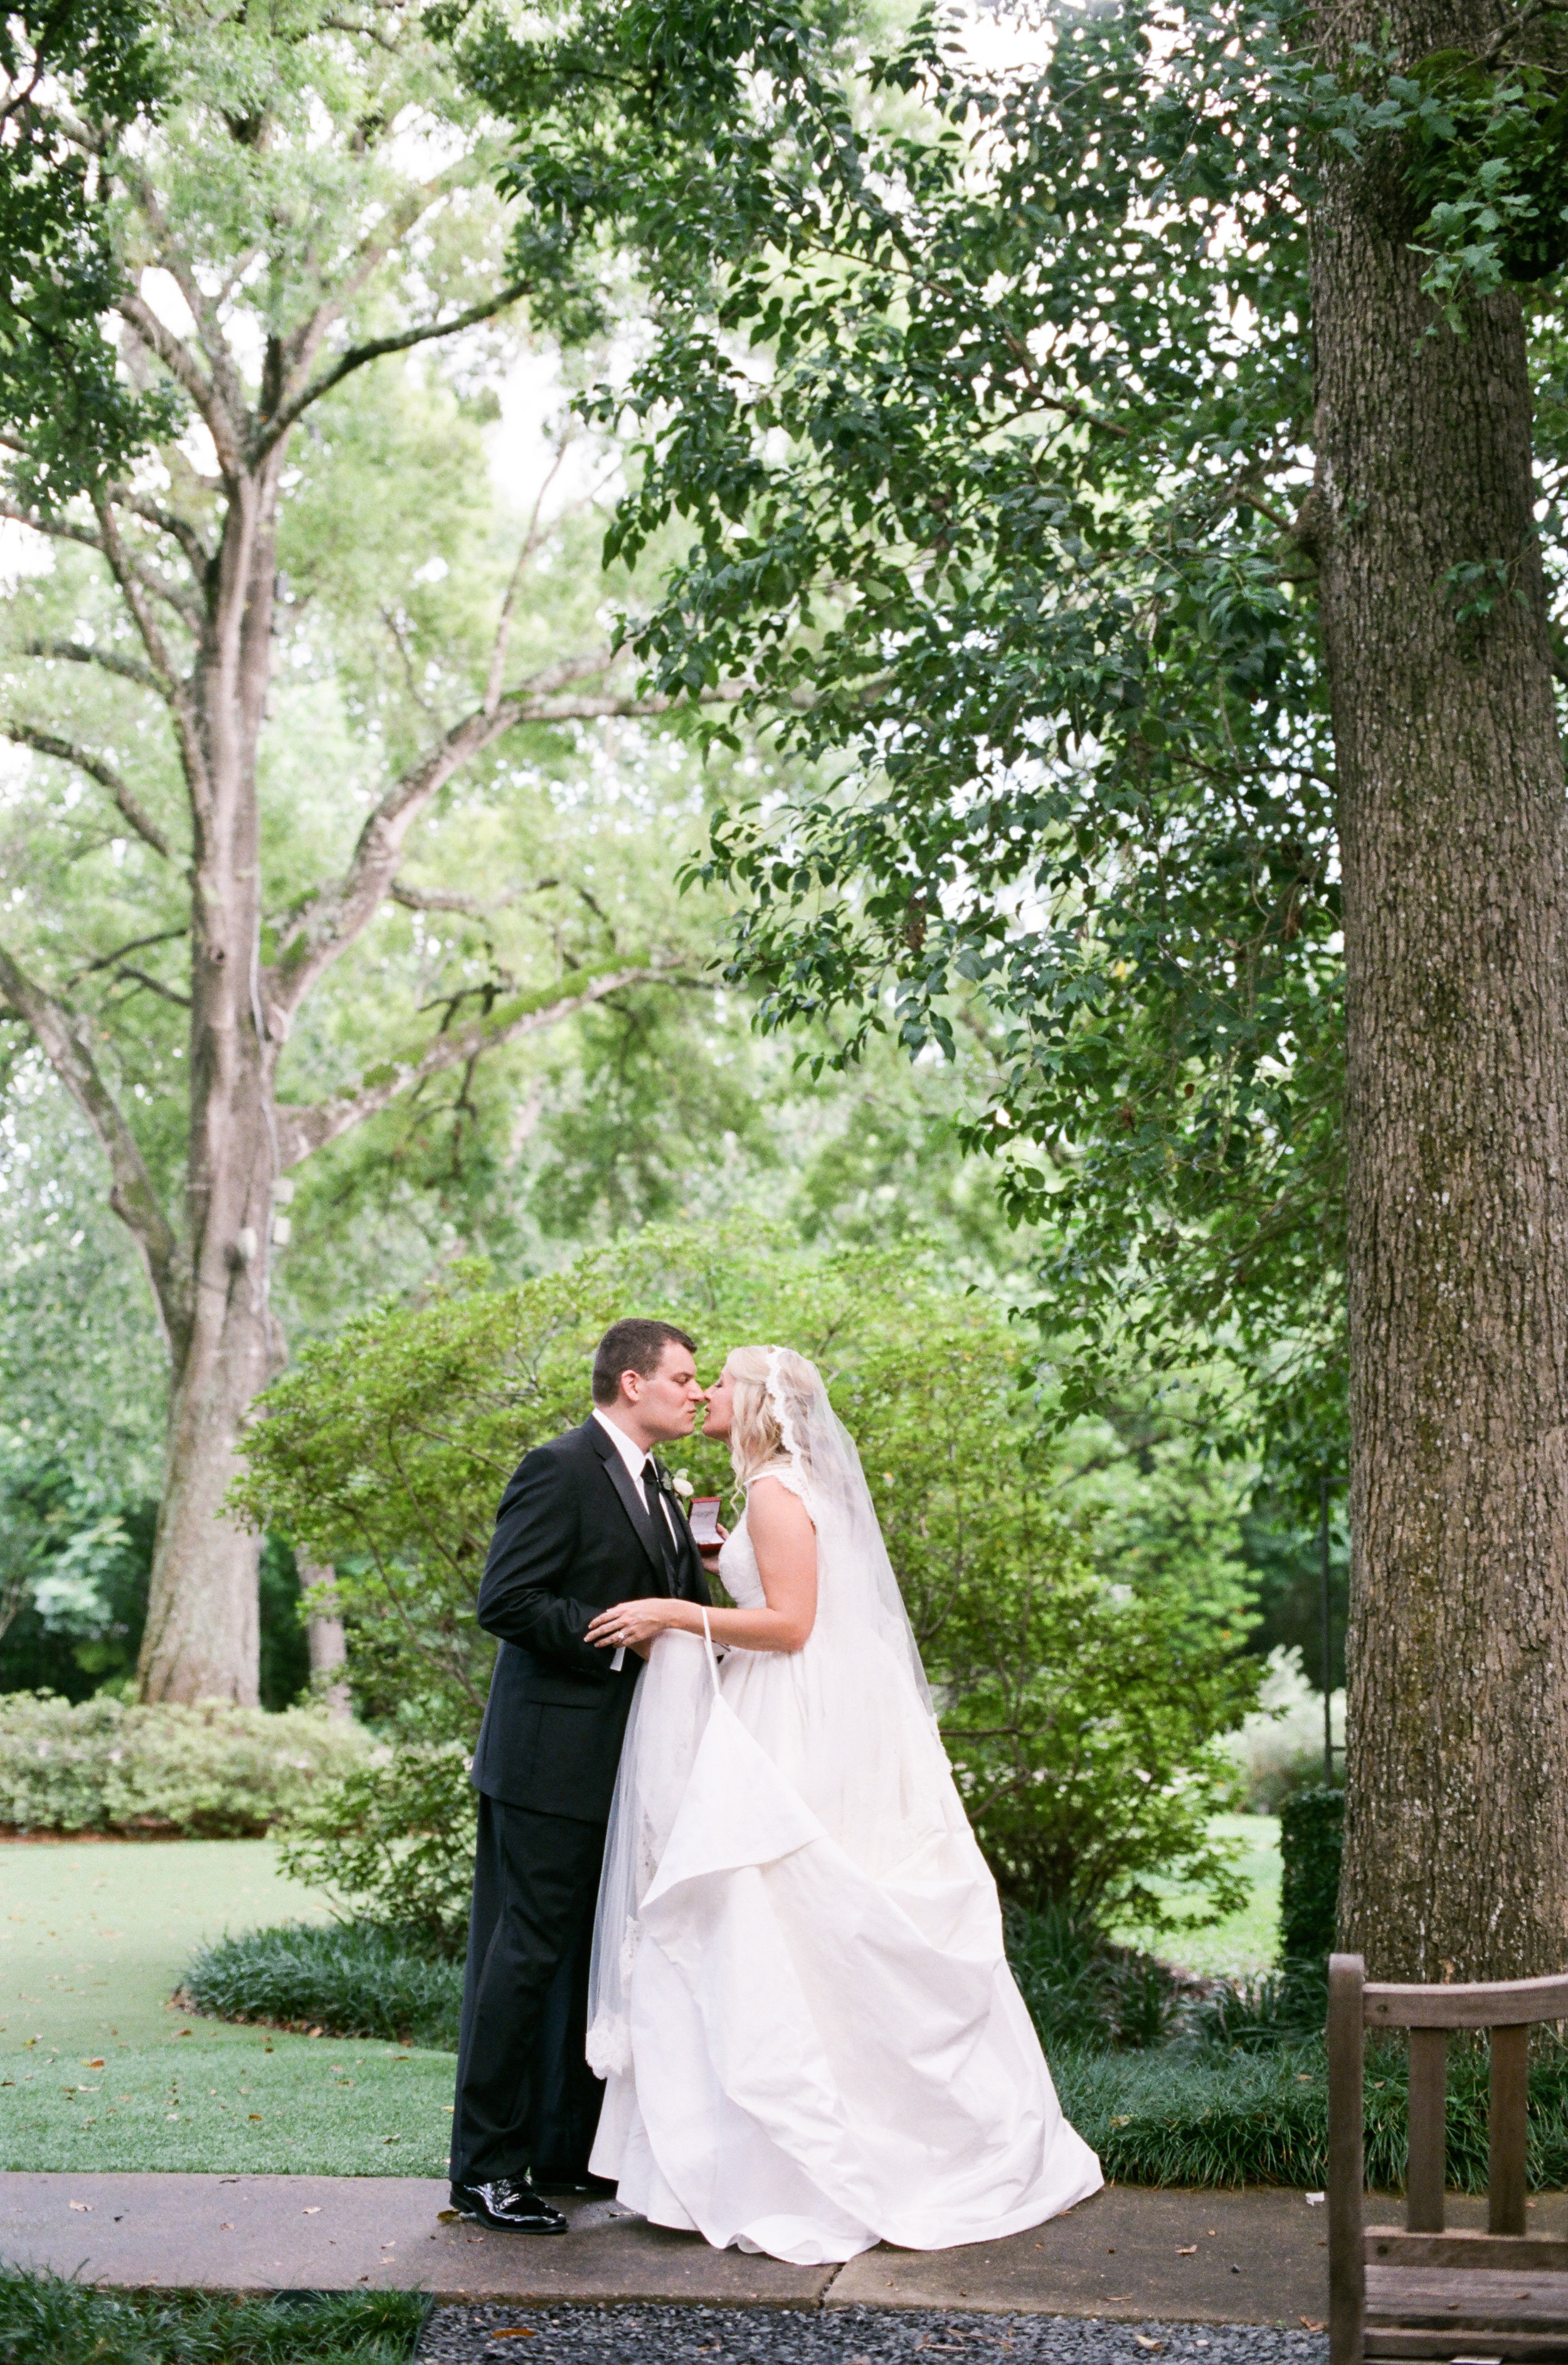 benefits of a first look_wedding photography_wedding photographer_film wedding photographer_Christine Gosch_www.christinegosch.com_Houston, Texas wedding photographer_ Houston, Texas-37.jpg